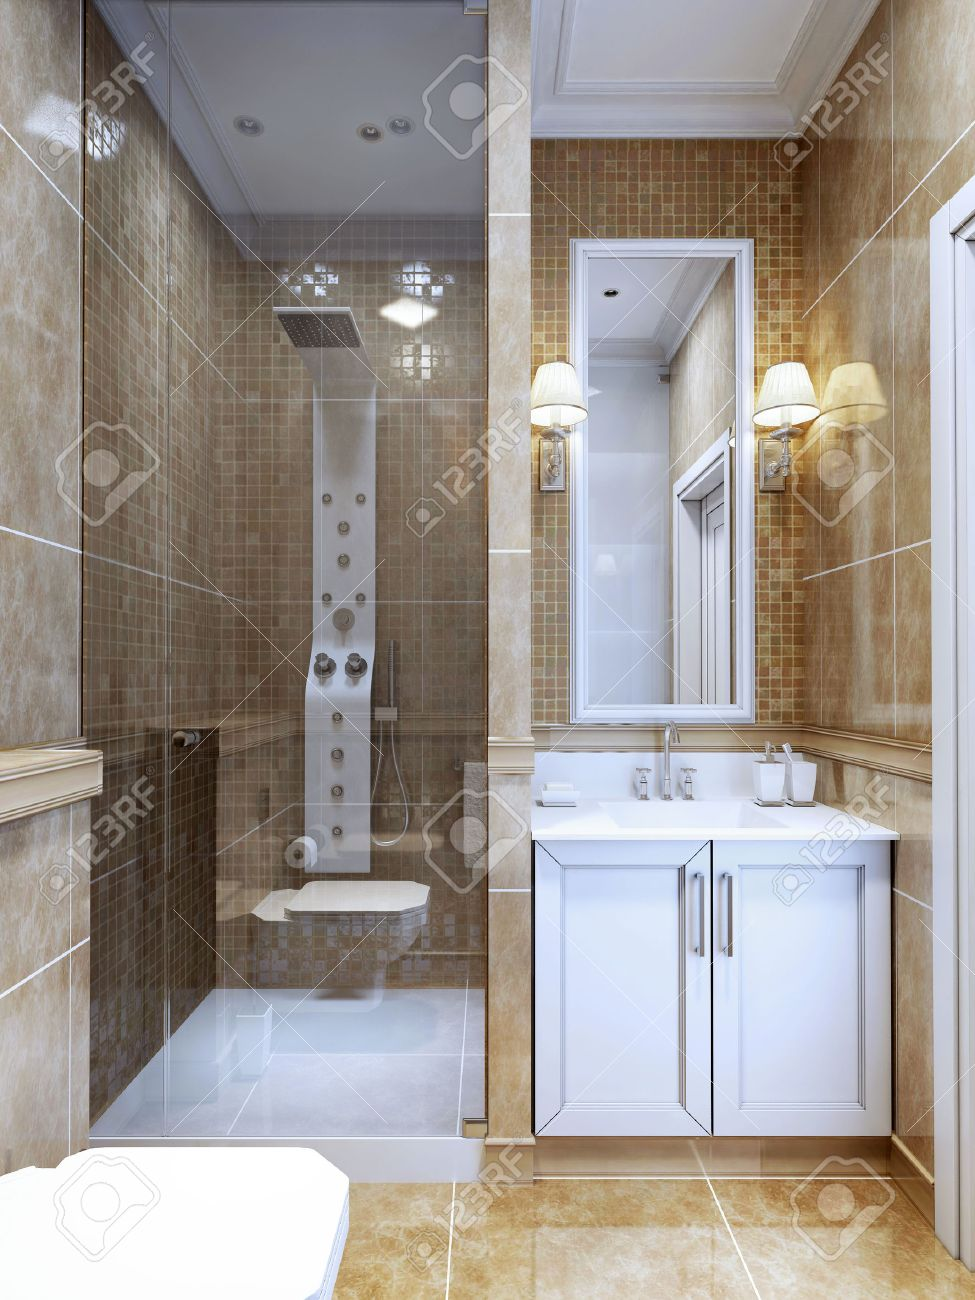 Design Of Modern Bathroom. he ombination Of Natural Marble ... - ^